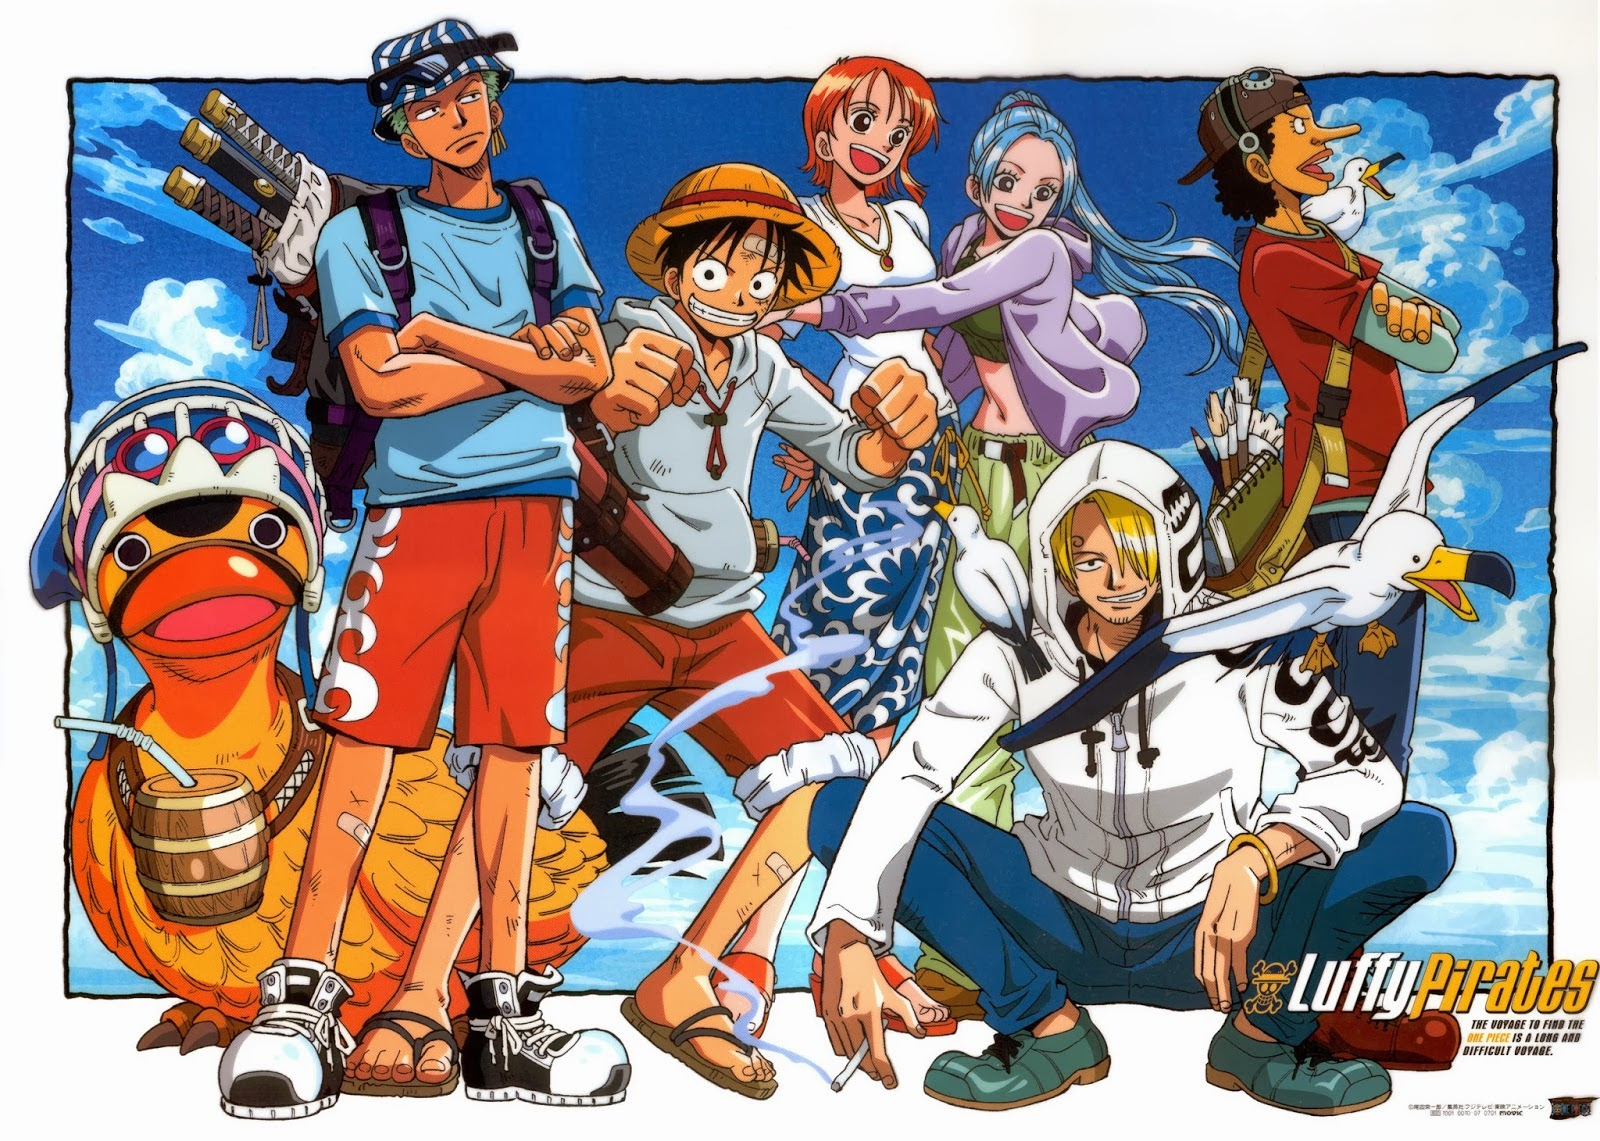 __HOT__ Download One Piece Episode 1 100 Sub Indonesia Film ONE.PIECE.full.1347378